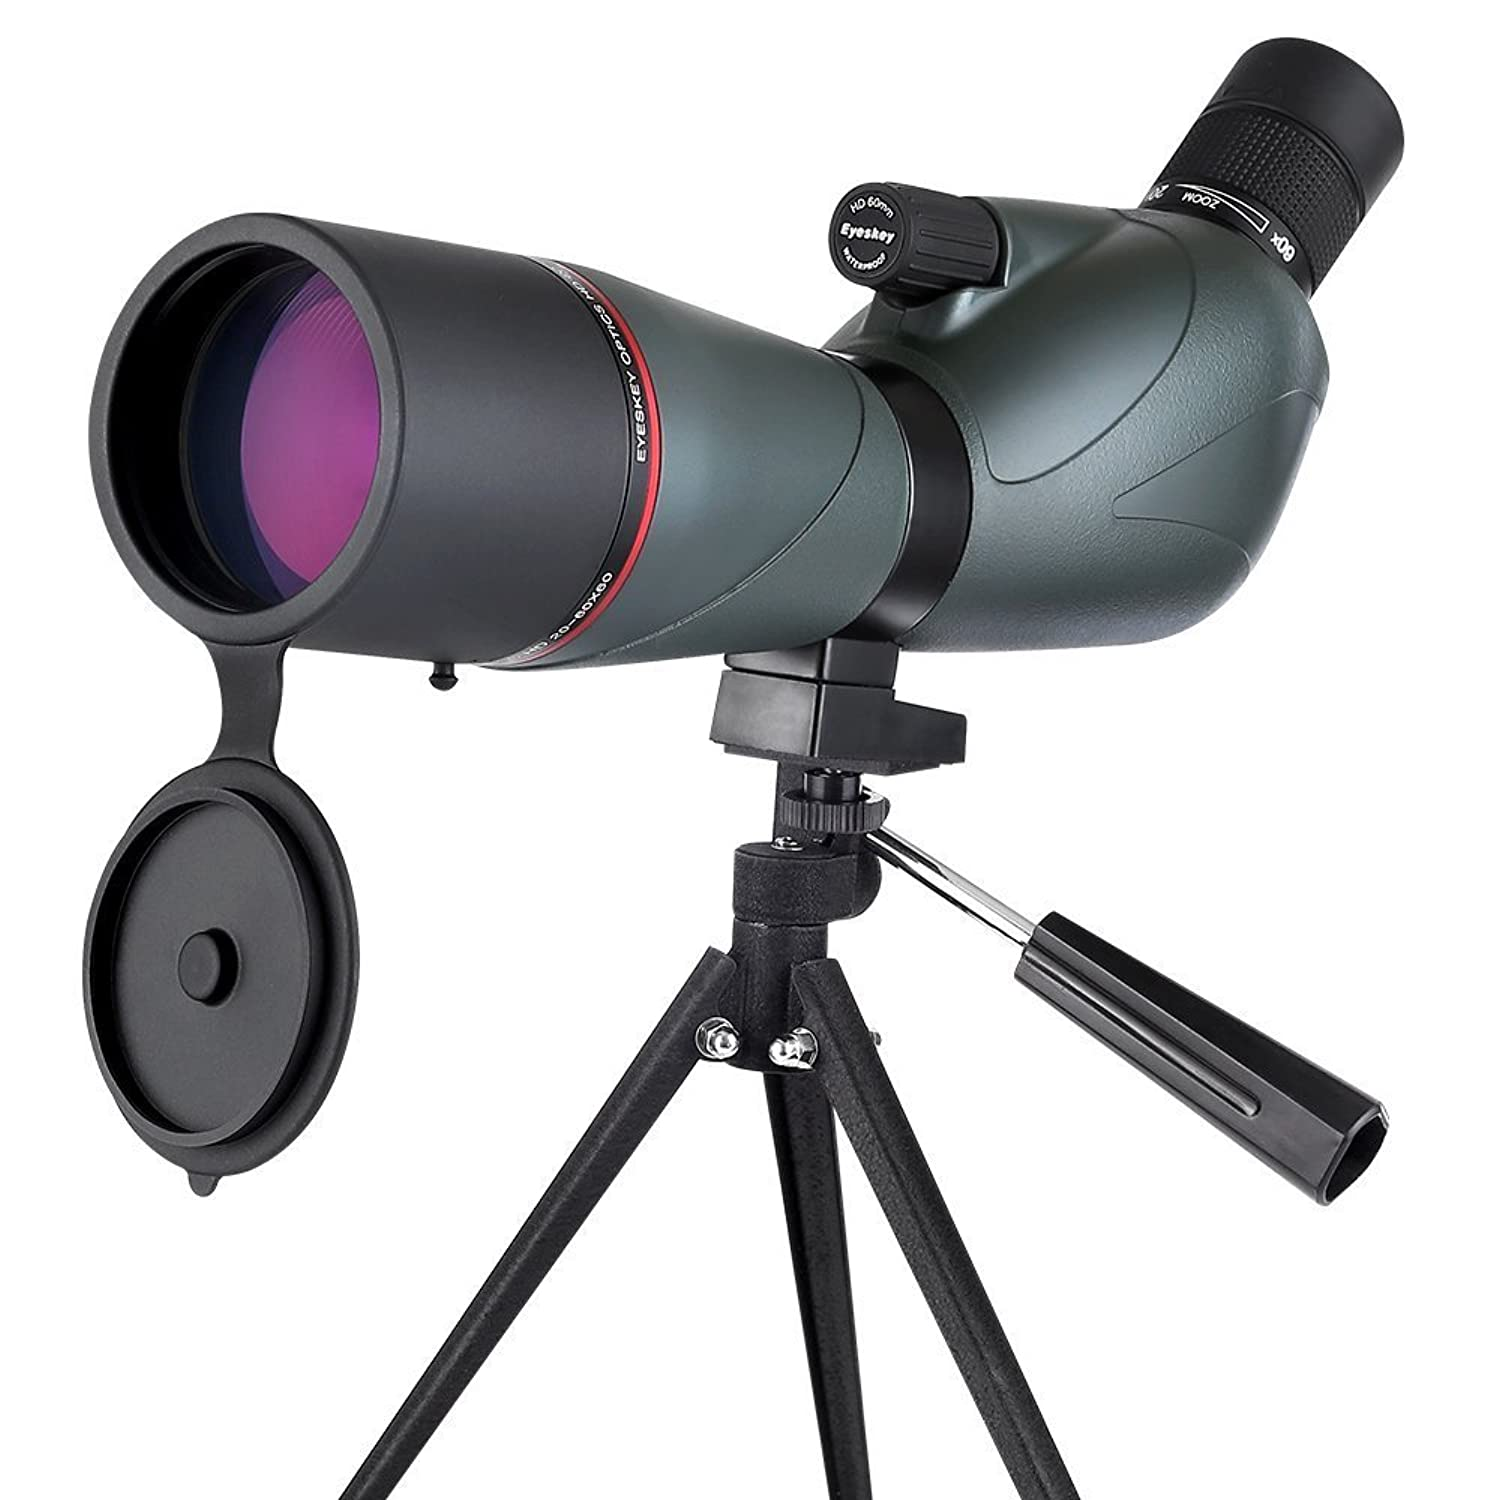 Eyeskey Spotting Scope, Waterproof Zoom Spotting Scope Telescope with Retractable Eyepiece and Fully Multi Coated Optical Glass Lens, Comes with Carry Pouch and Tripod